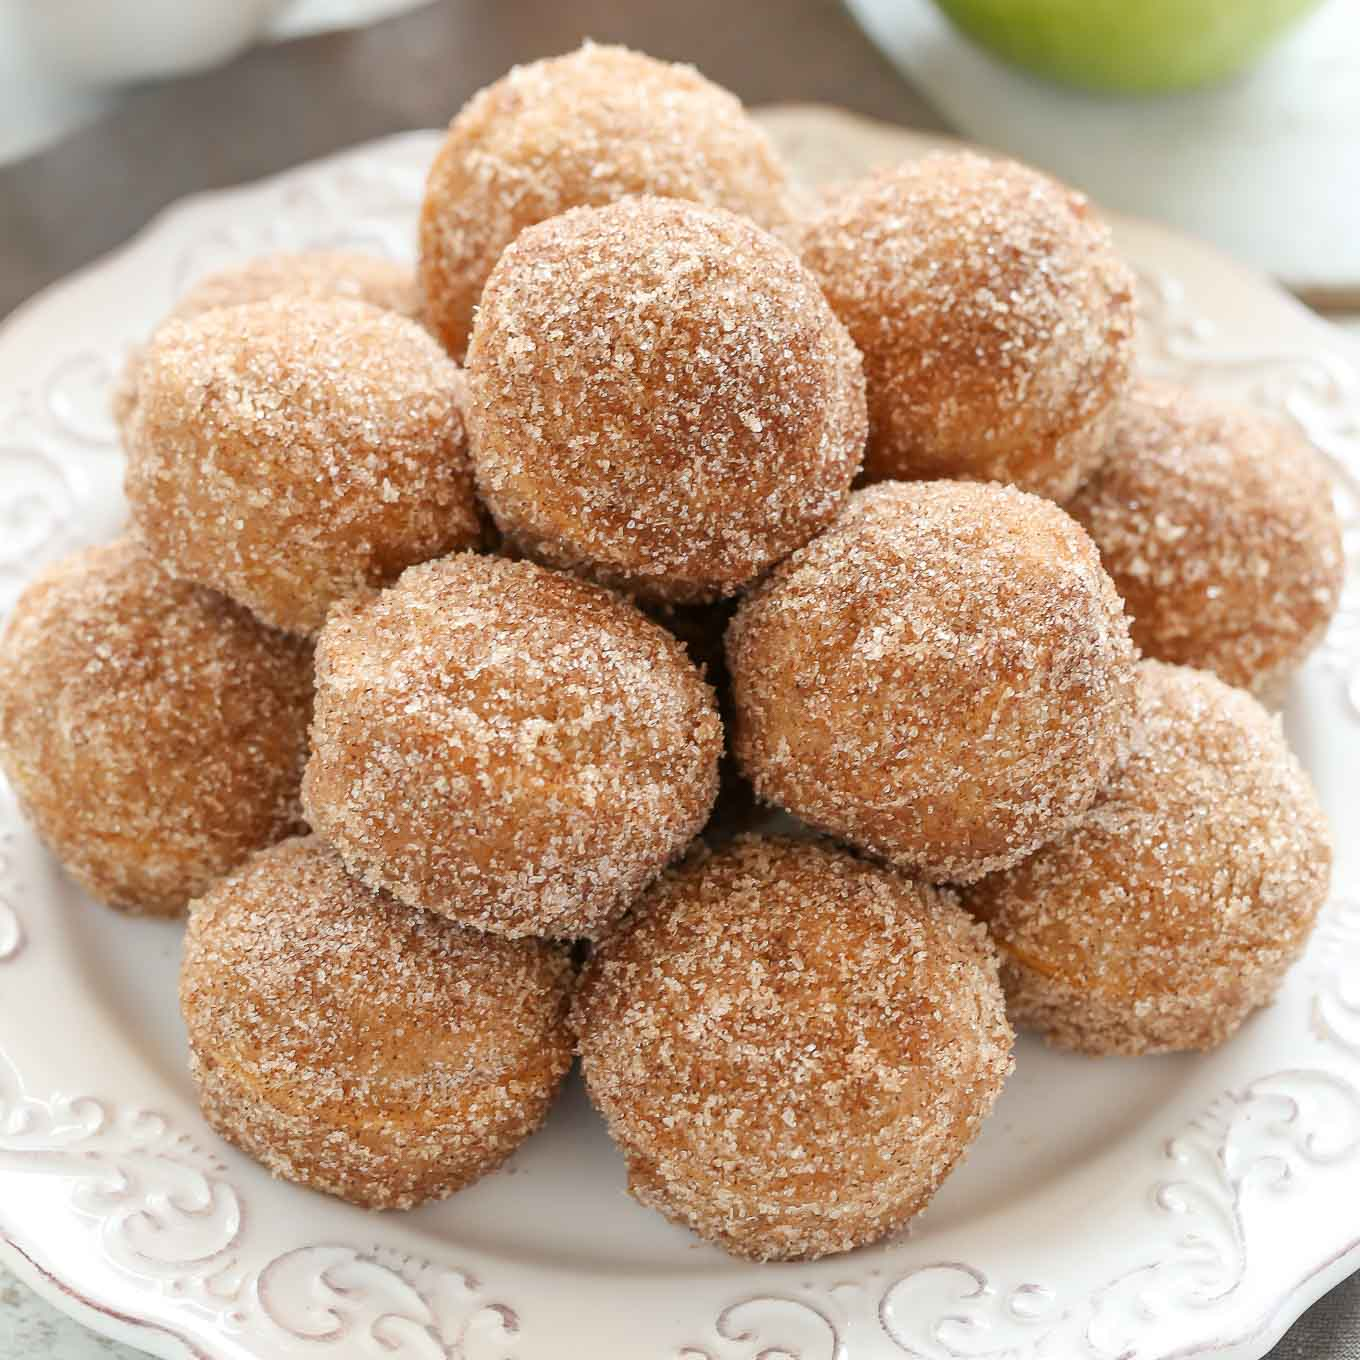 deep fried apple cider donut holes